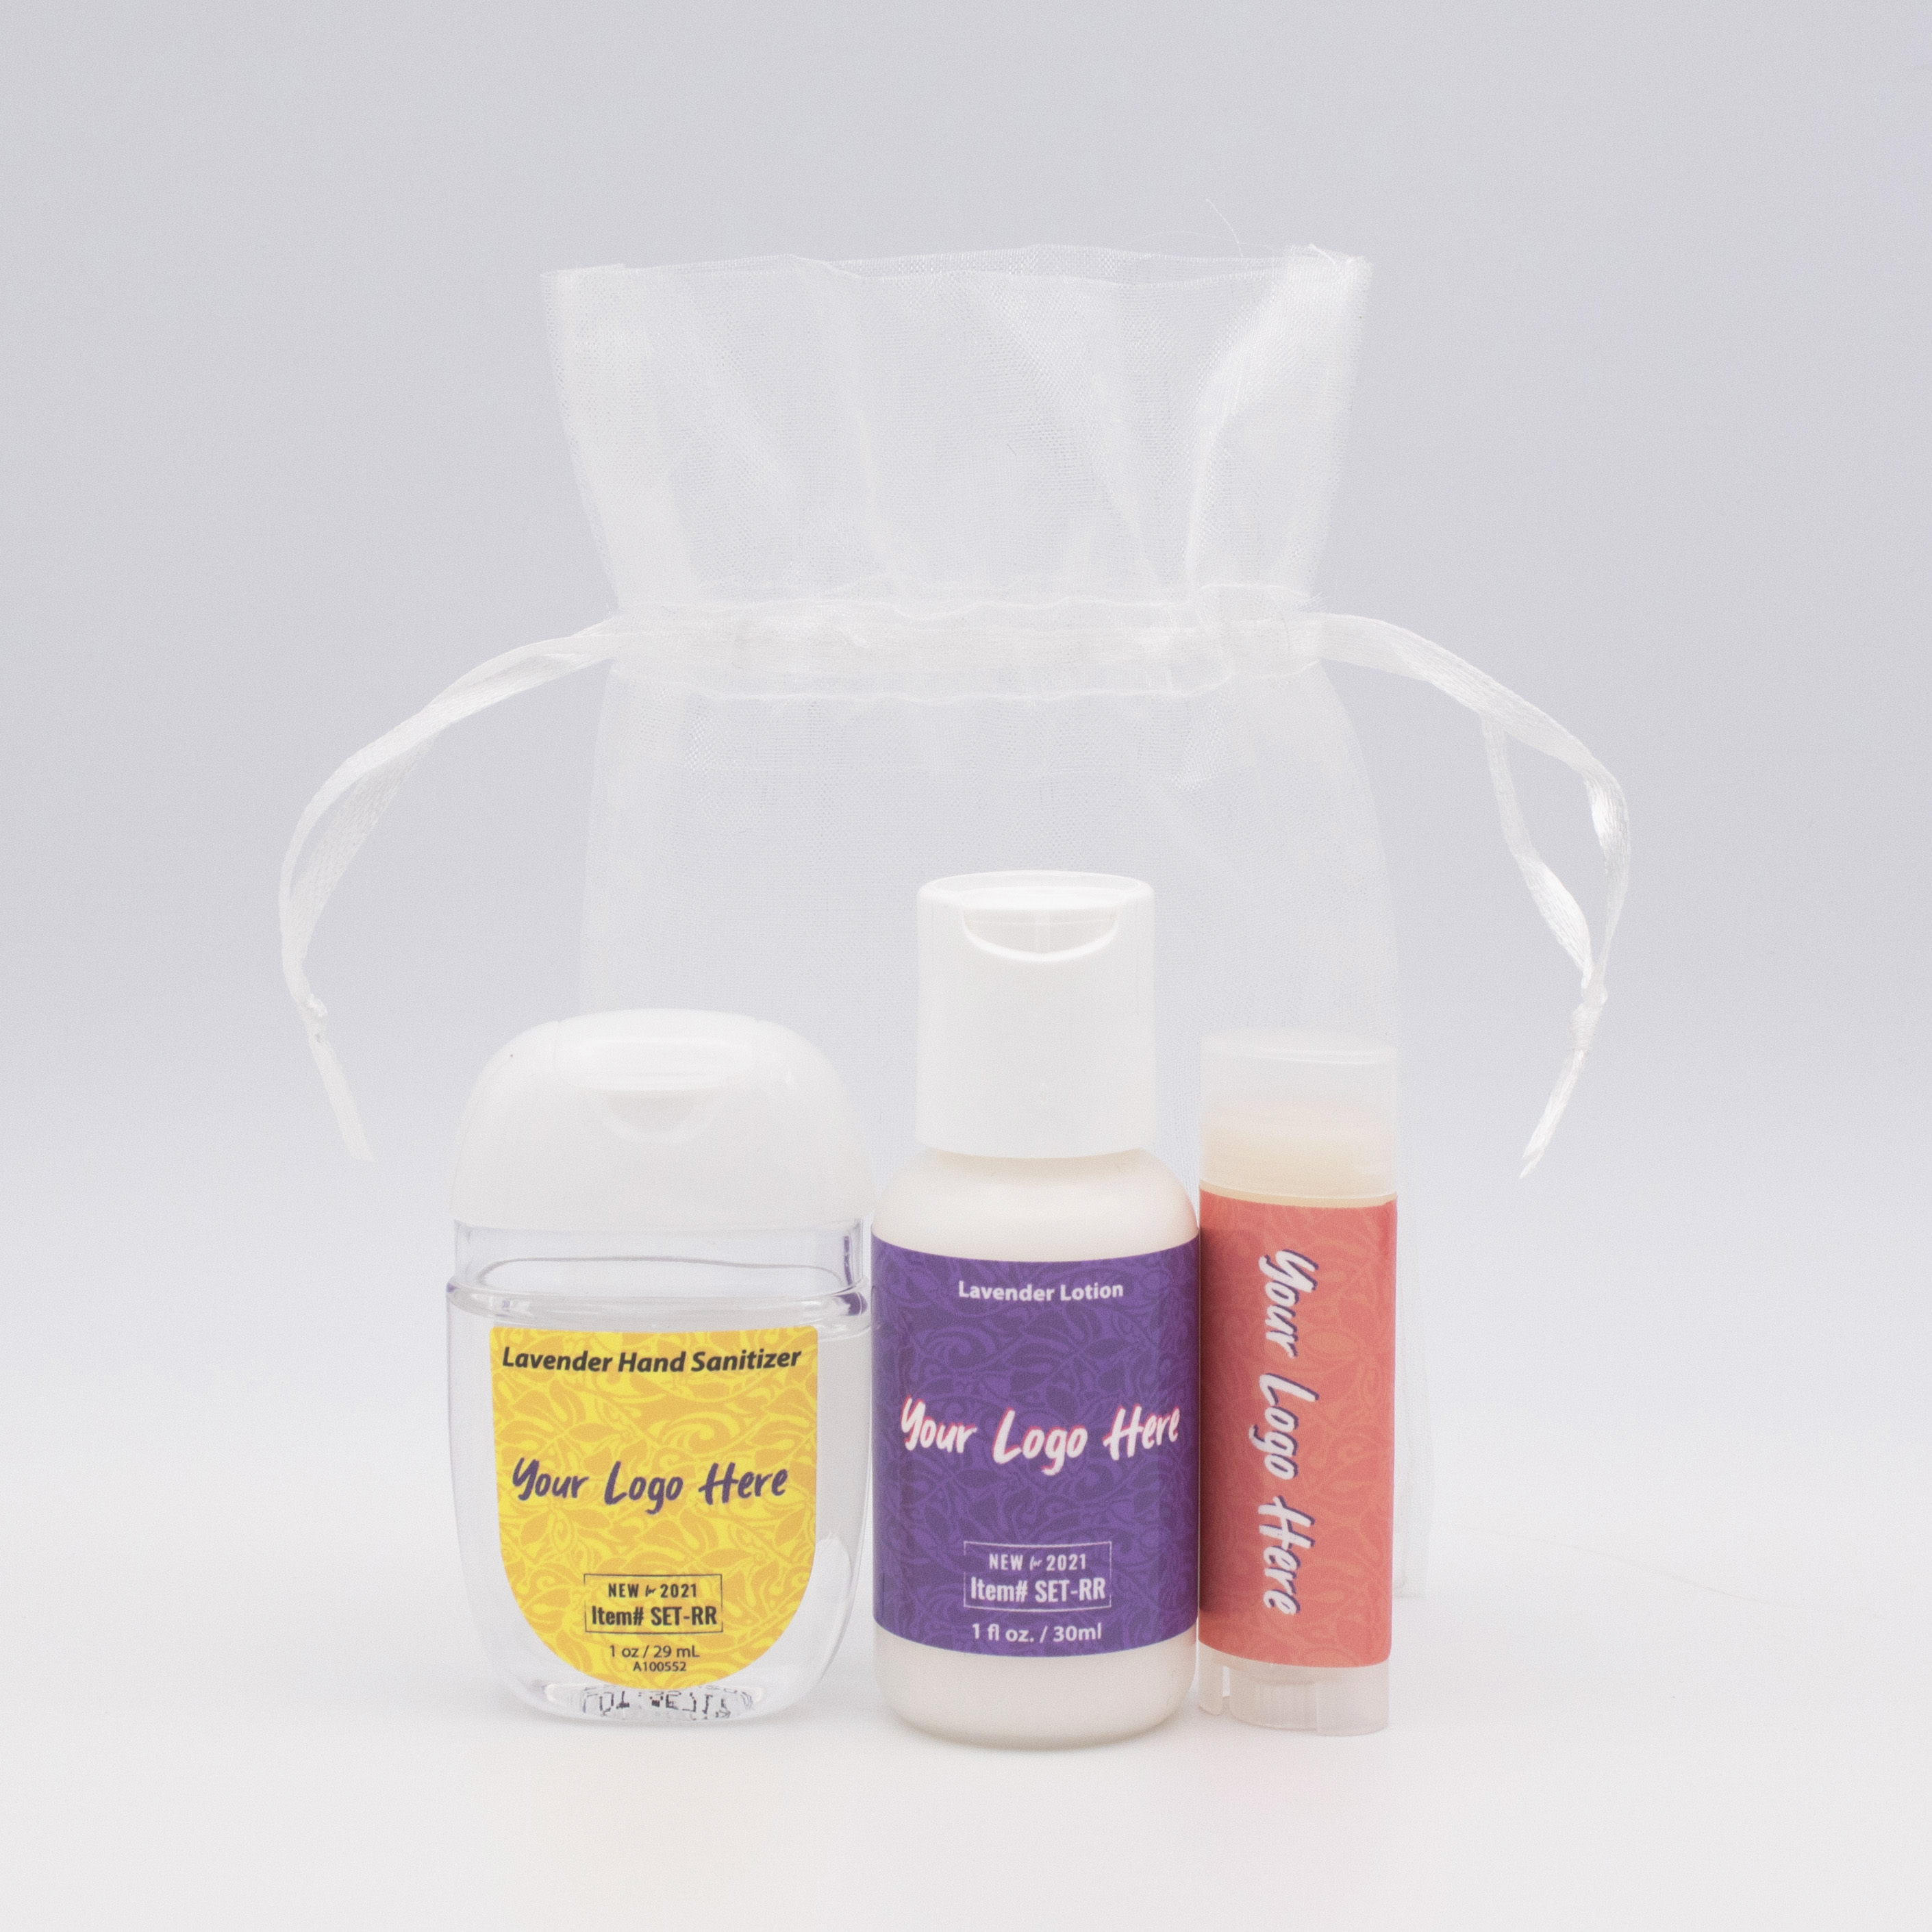 Relax and Renew Kit